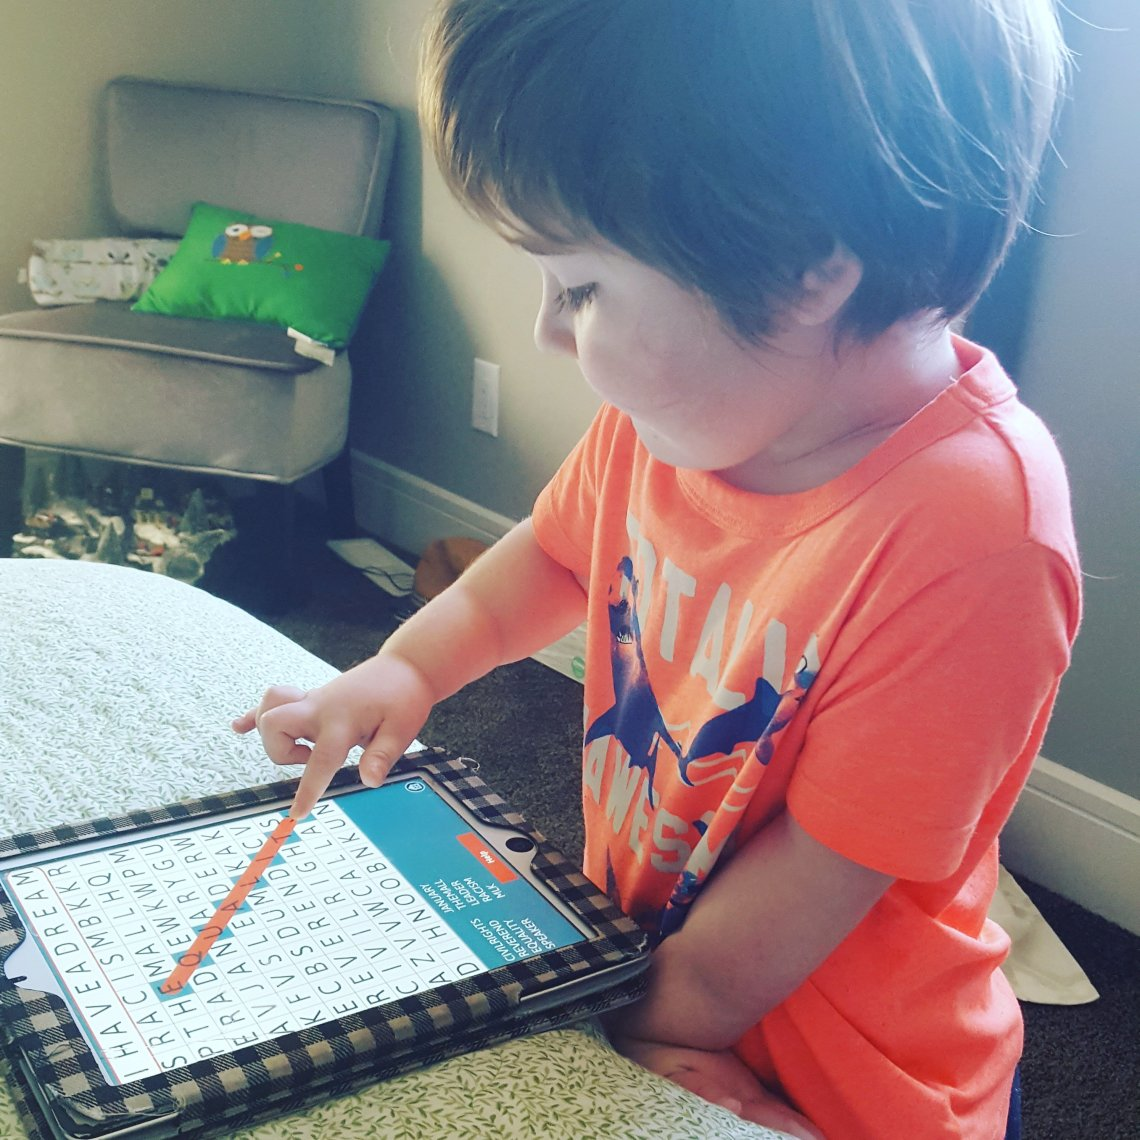 Word searches are one of the many games Cub enjoys playing.